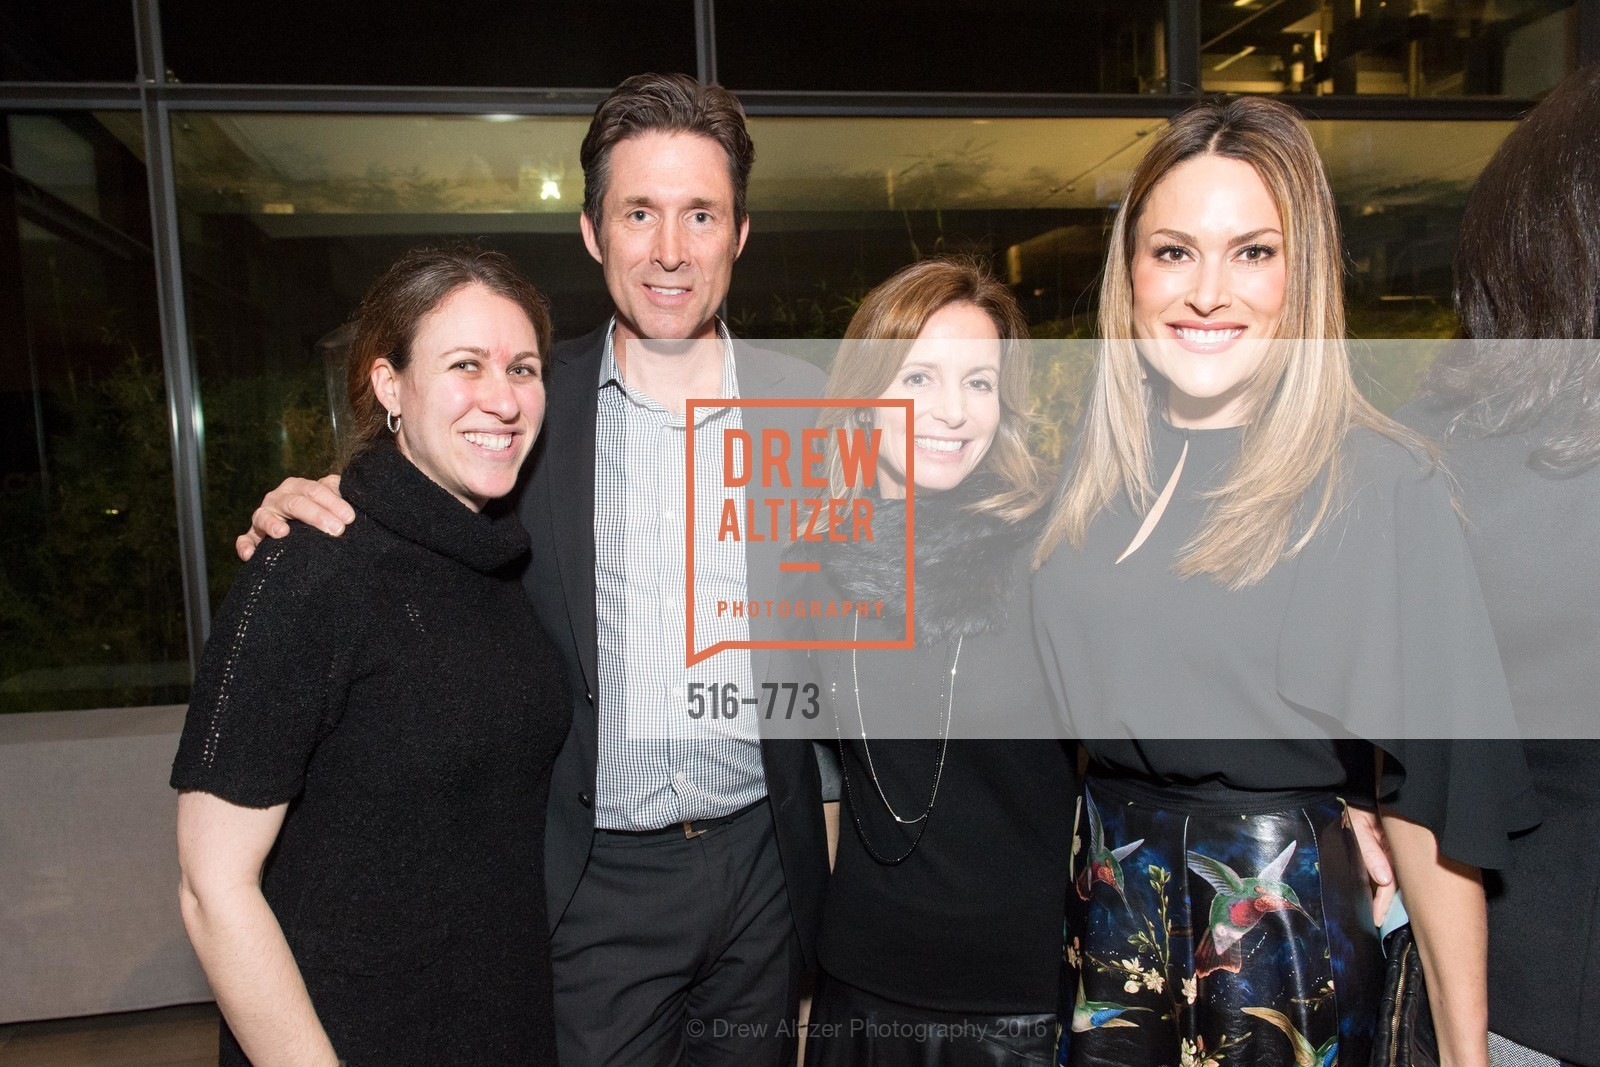 Lisa Faulkner, Paul Warrin, Carrie Goodman, Kara Warrin, Sotheby's International Realty's Celebrates the New Year, The Battery, Penthouse. 717 Battery St, January 27th, 2016,Drew Altizer, Drew Altizer Photography, full-service agency, private events, San Francisco photographer, photographer california